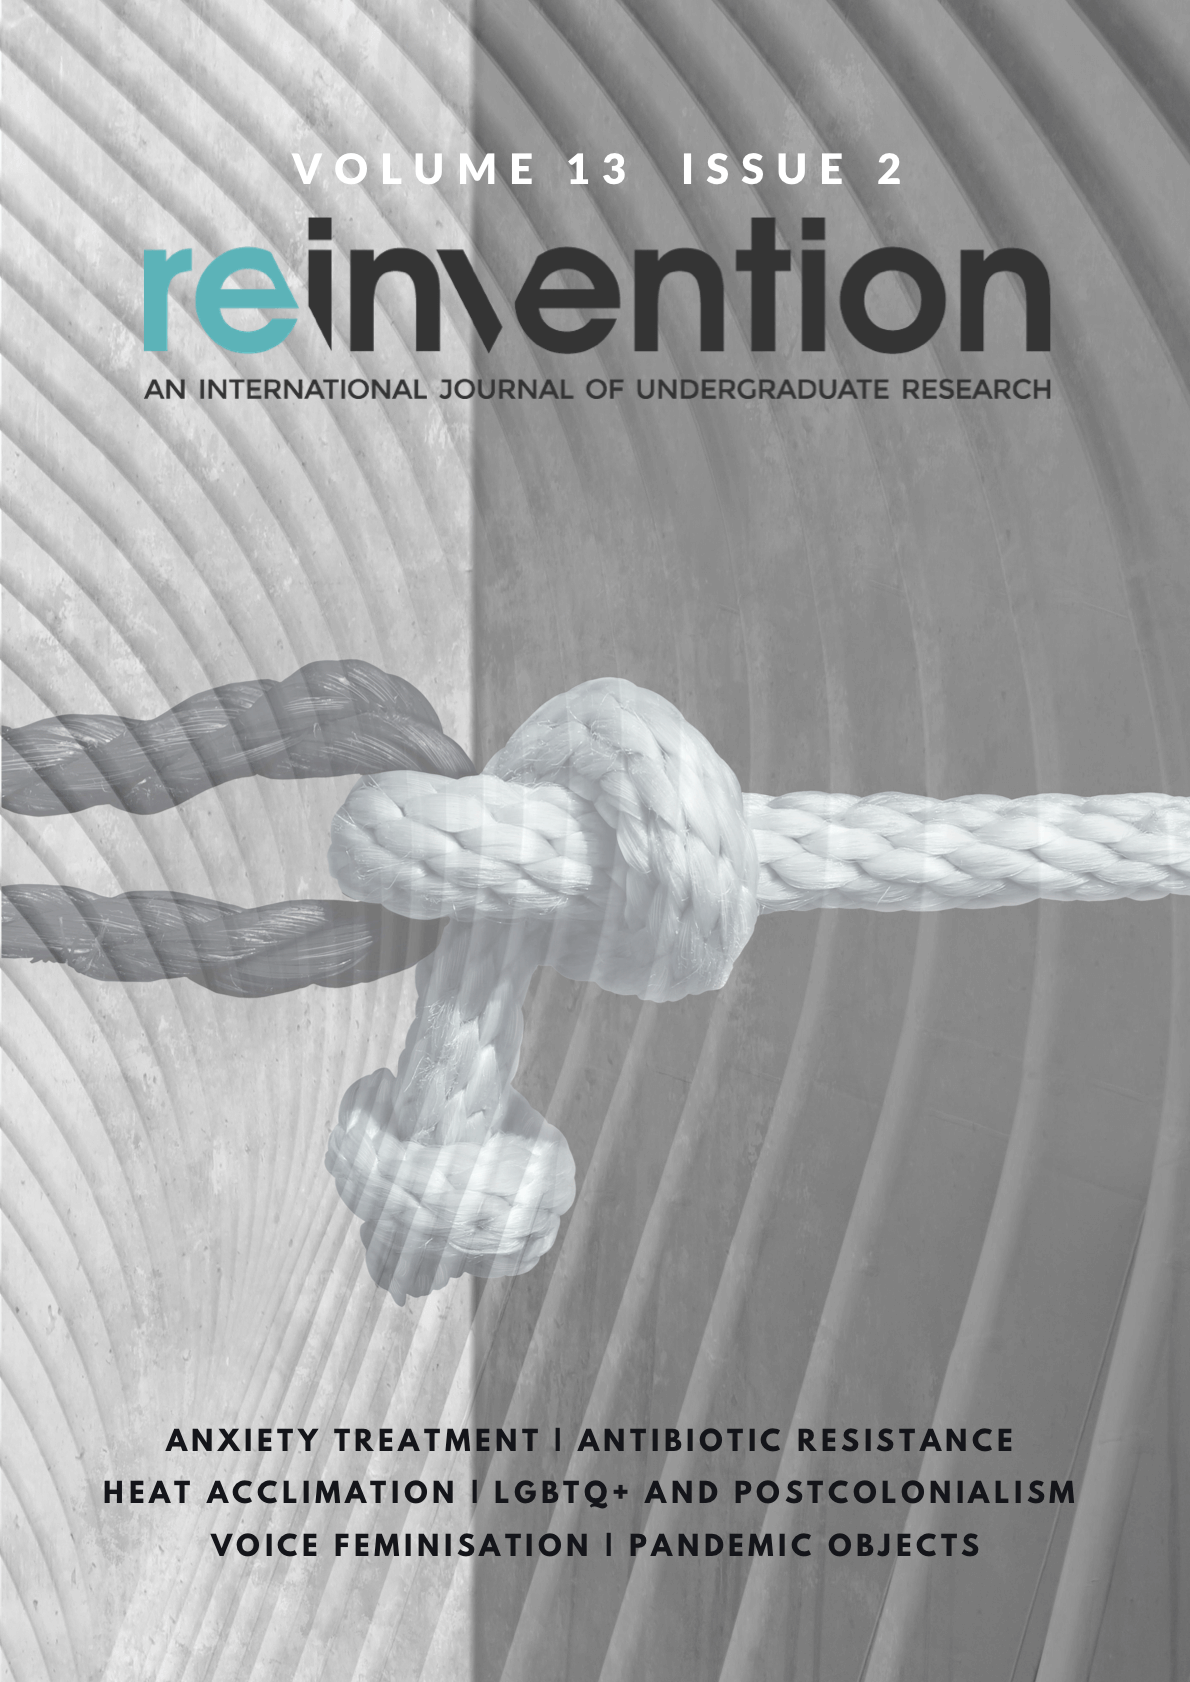 Reinvention journal volume 13 issue 2 cover